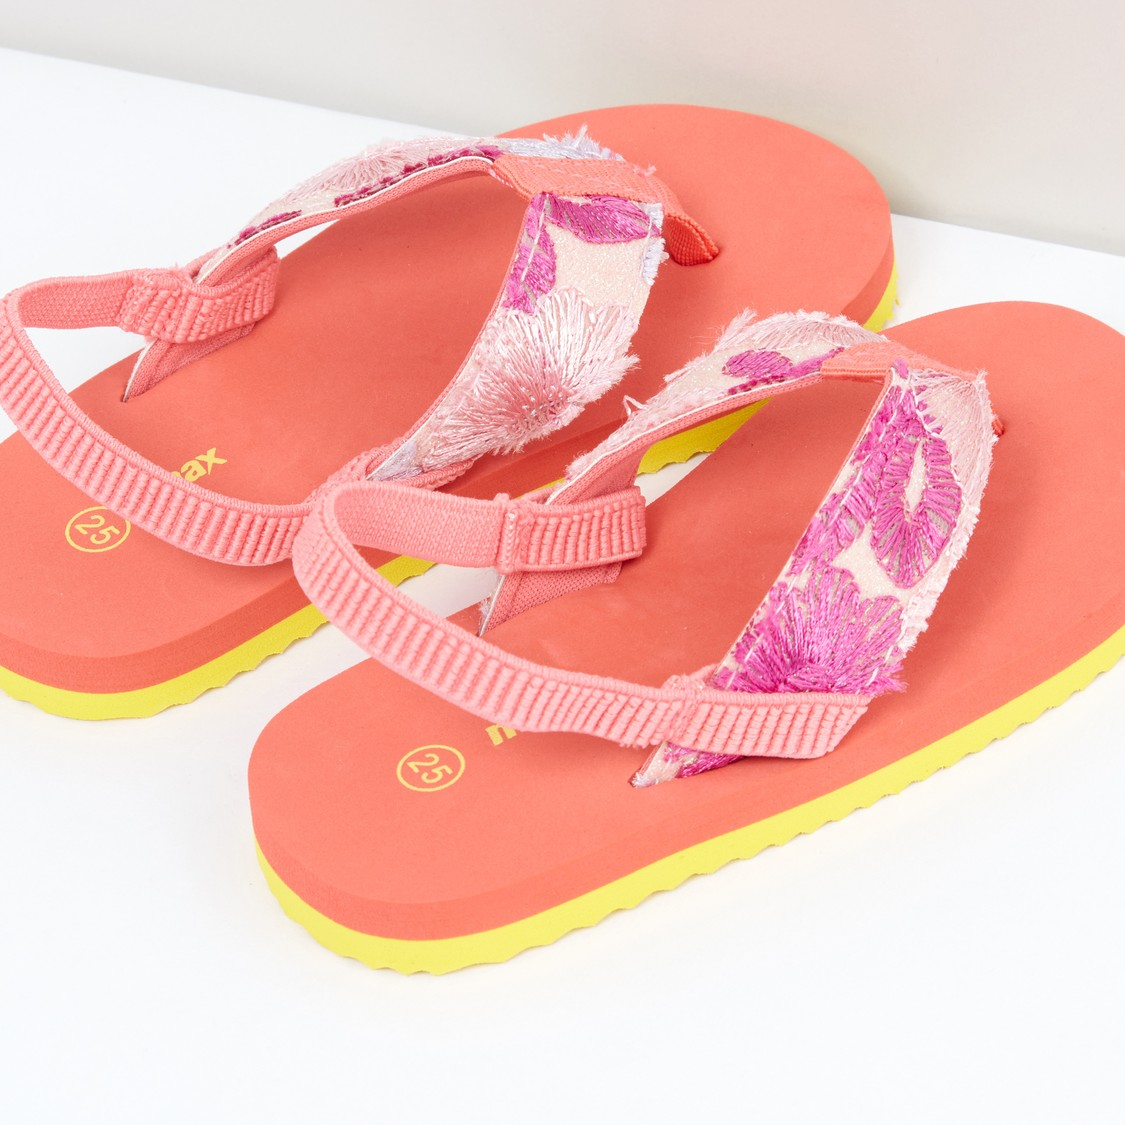 Embroidered Flip Flops with Elasticised Backstrap